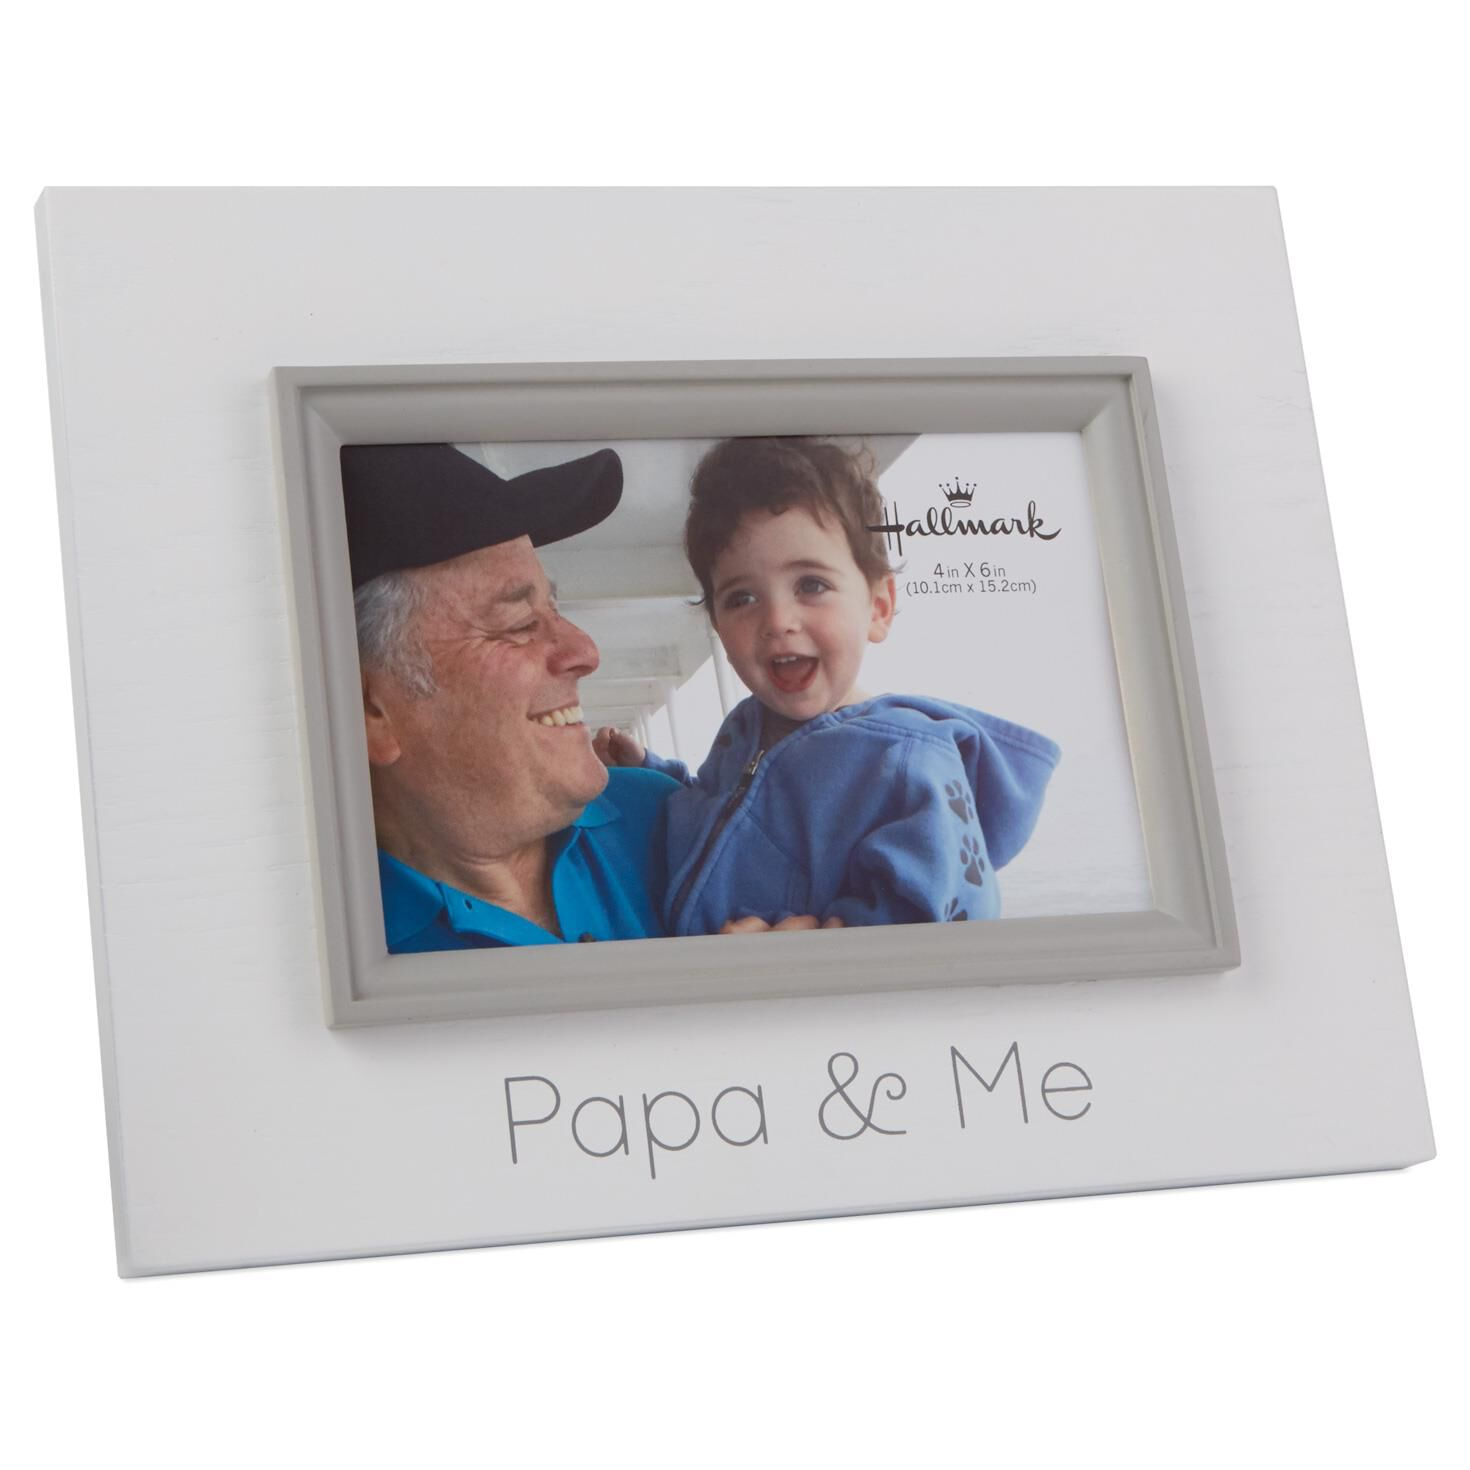 papa me wood photo frame 4x6 picture frames hallmark